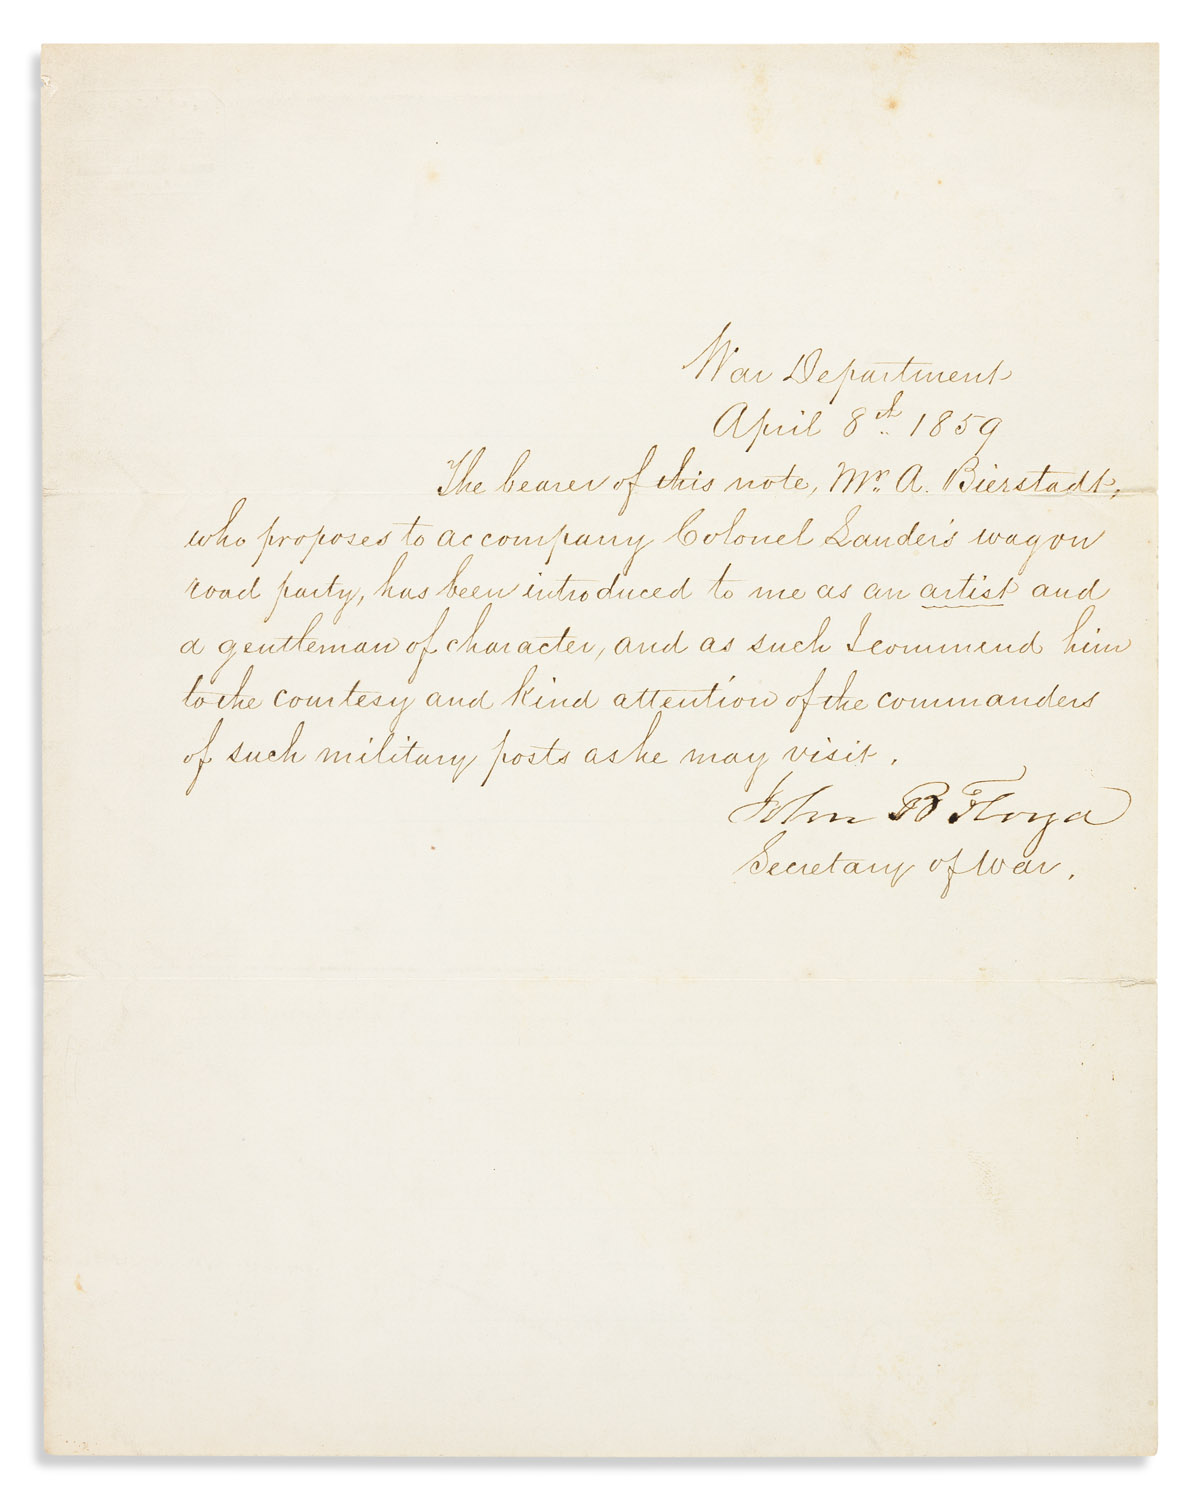 (ART.) John B. Floyd. Letter of recommendation for the painter Albert Bierstadt to bring on his first Western trip.